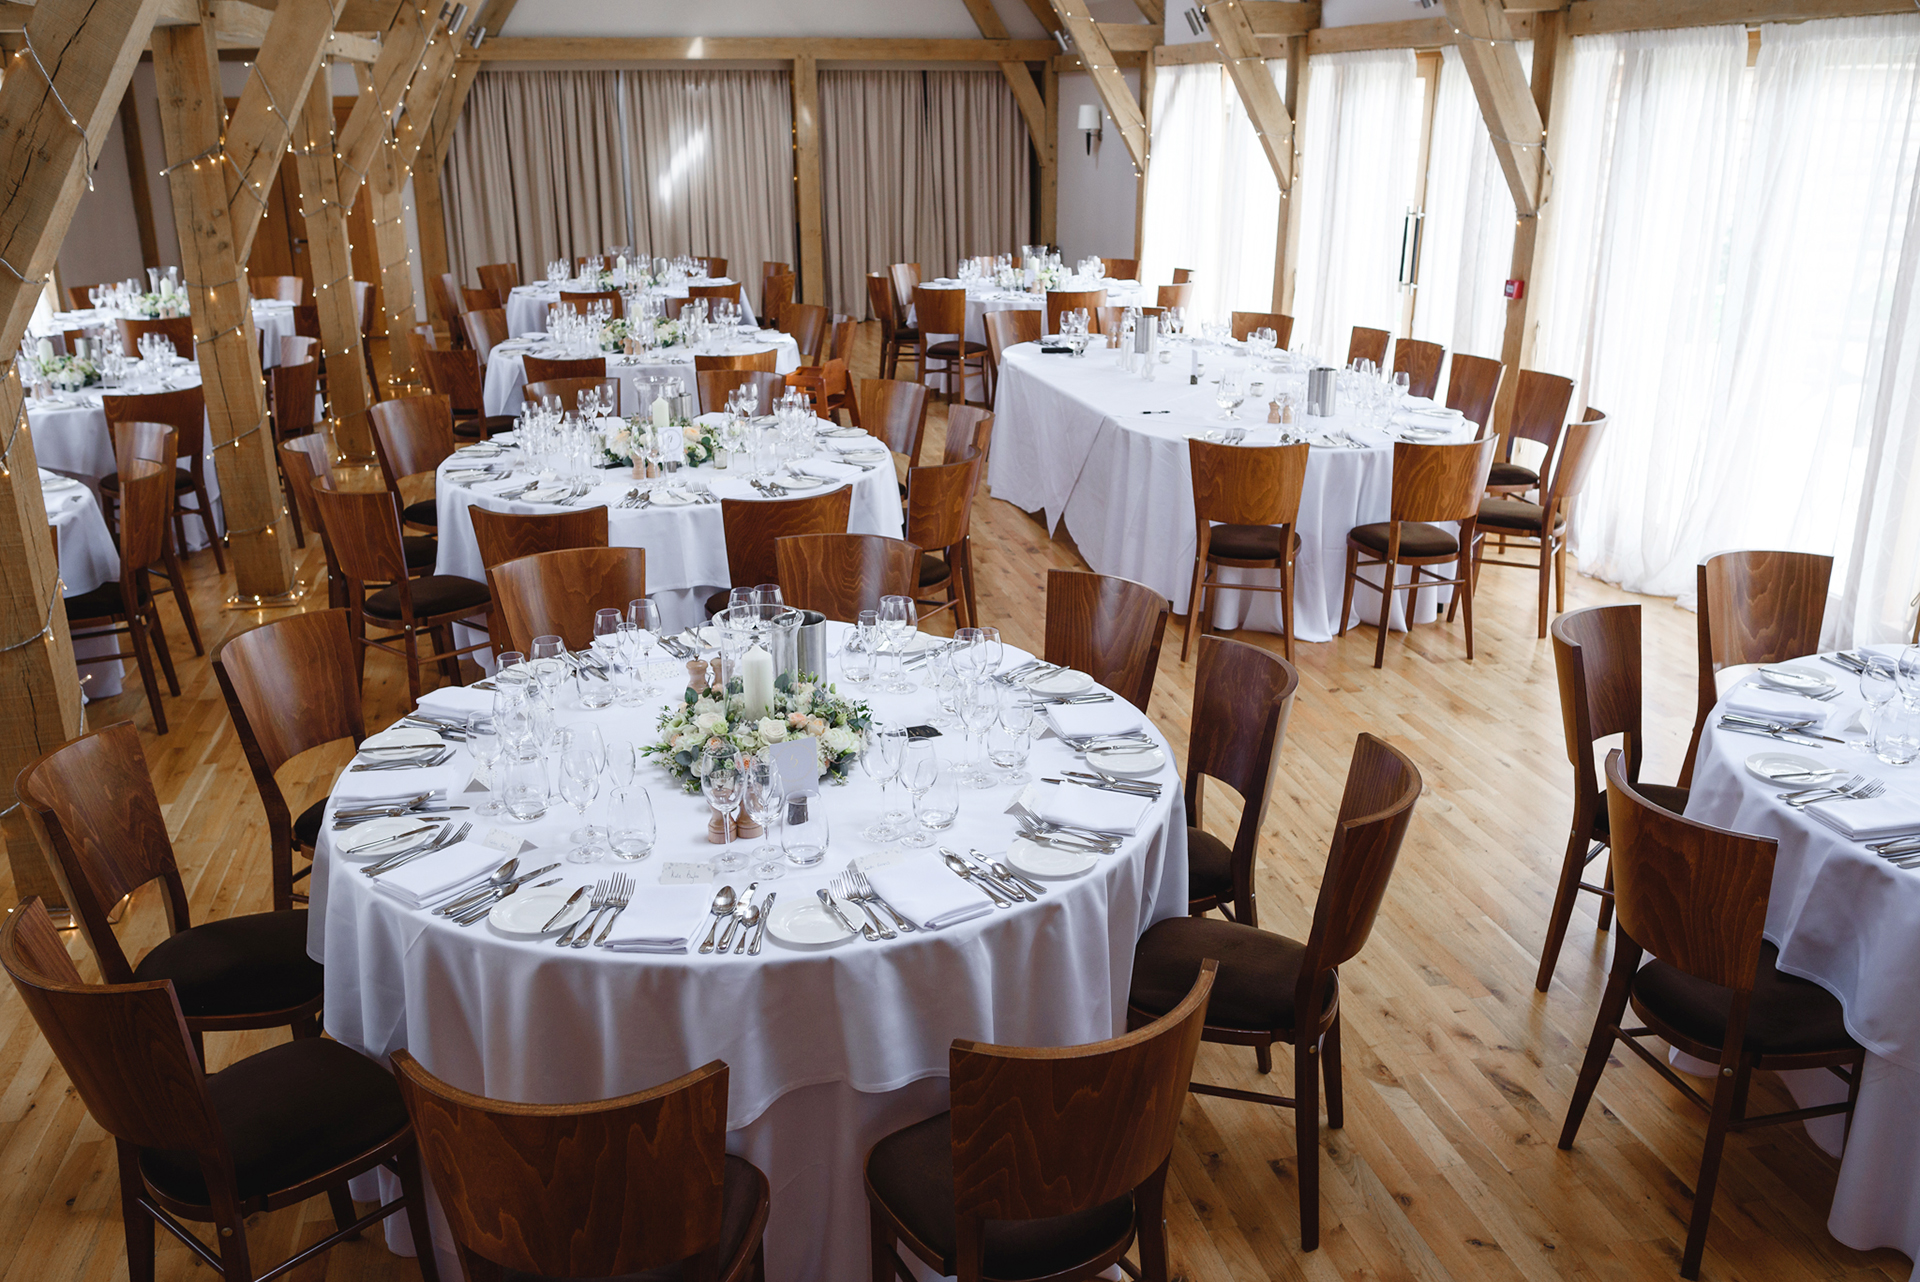 The beautiful wedding barn set up for the wedding breakfast with candles in hurricane vases on each table